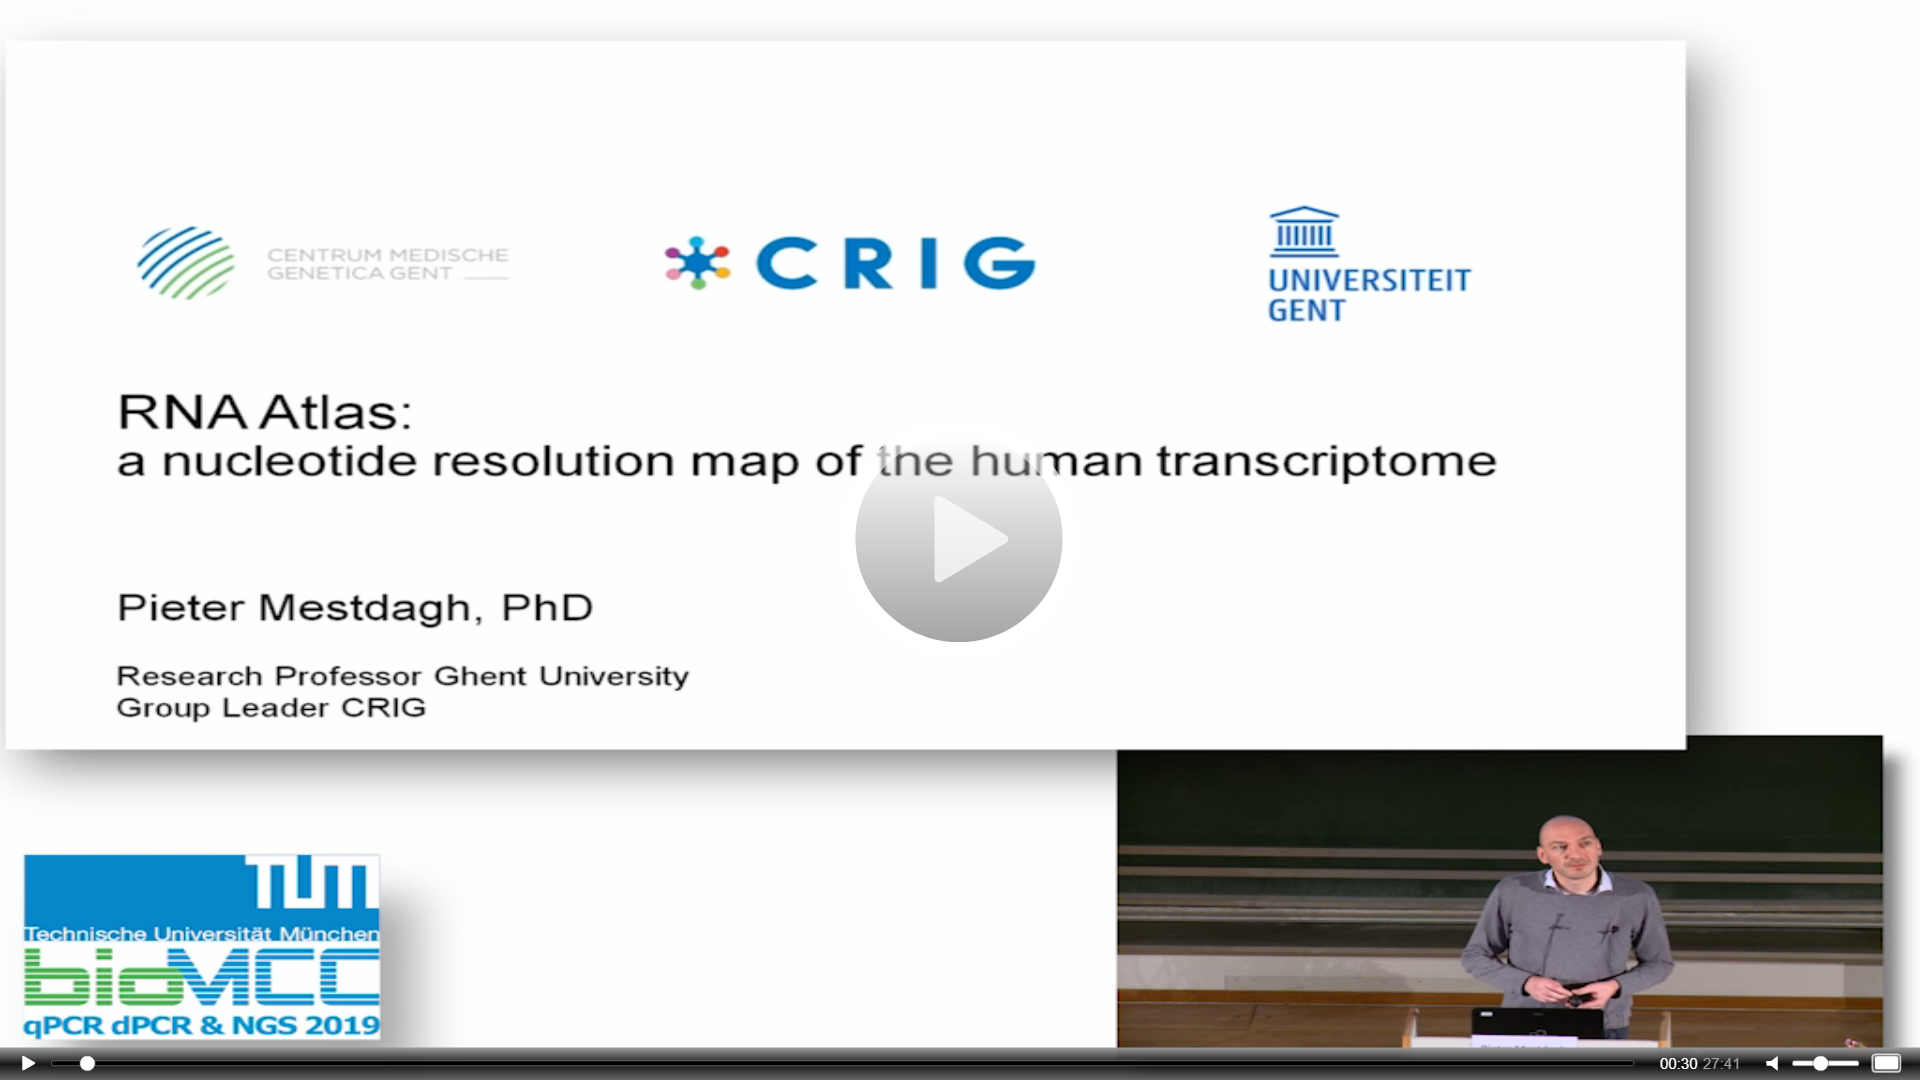 RNA Atlas: A Nucleotide Resolution Map Of The Human Transcriptome